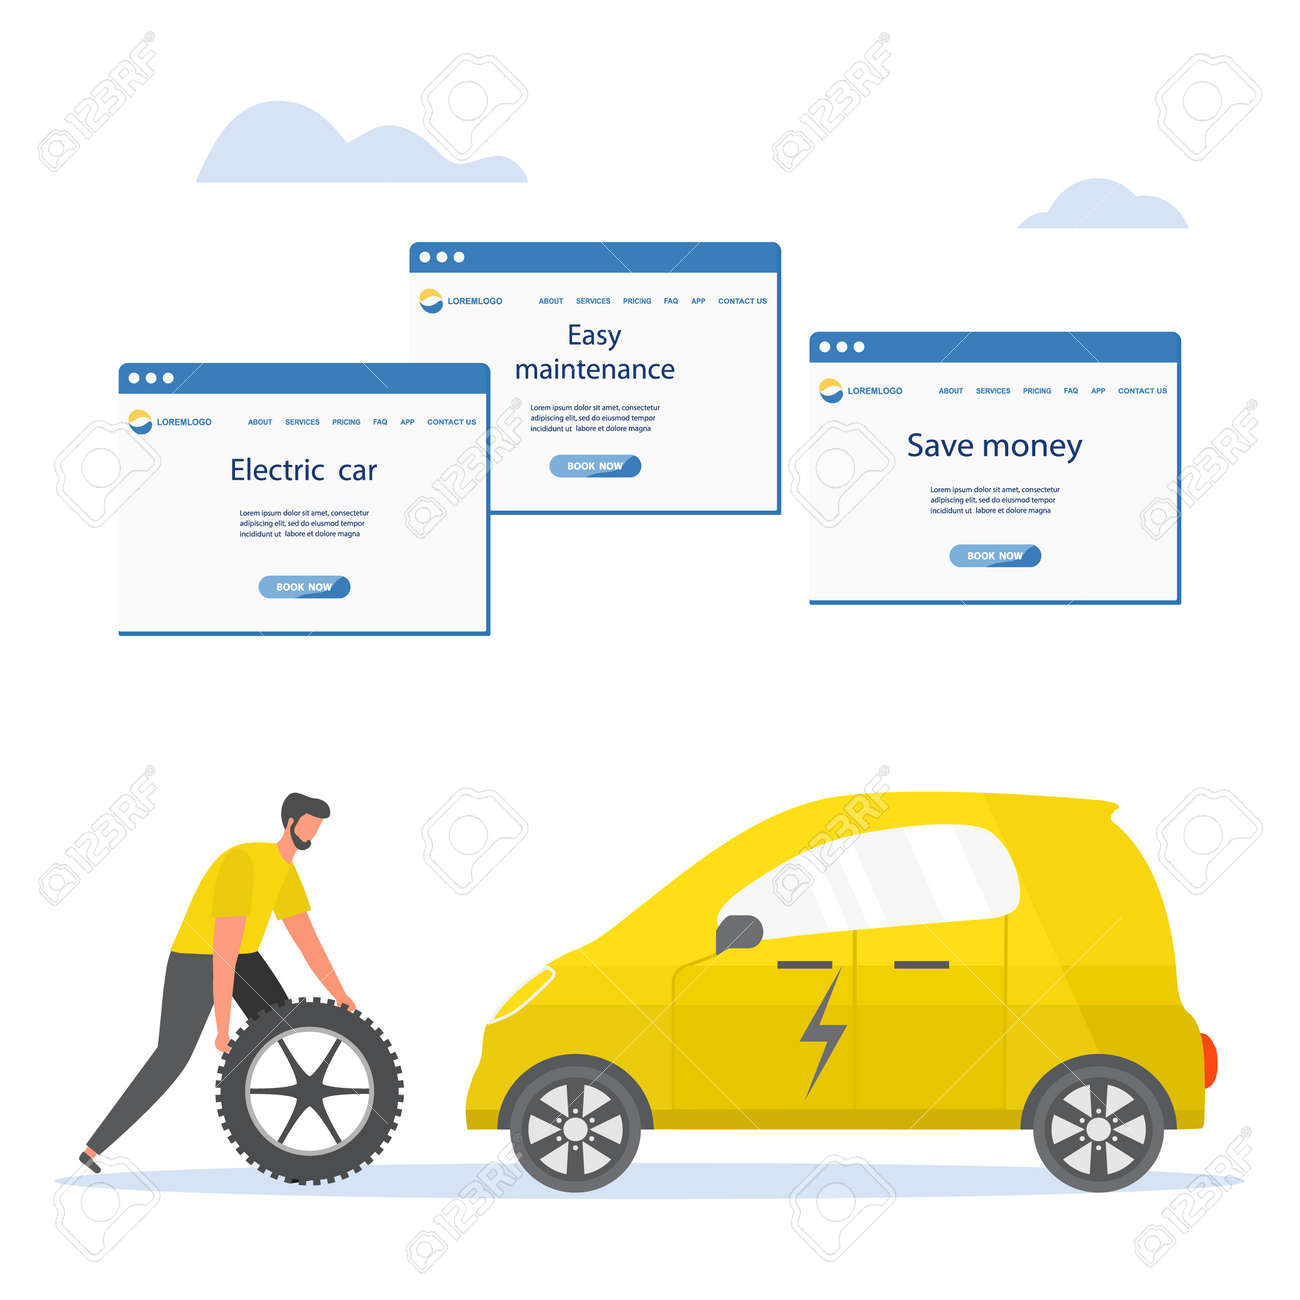 Vector illustration Repair, service, maintenance of electric car. Green energy. New transport eco technologies. ECO friendly. Environmental Protection. Zero emission. Design for web, print - 169848262